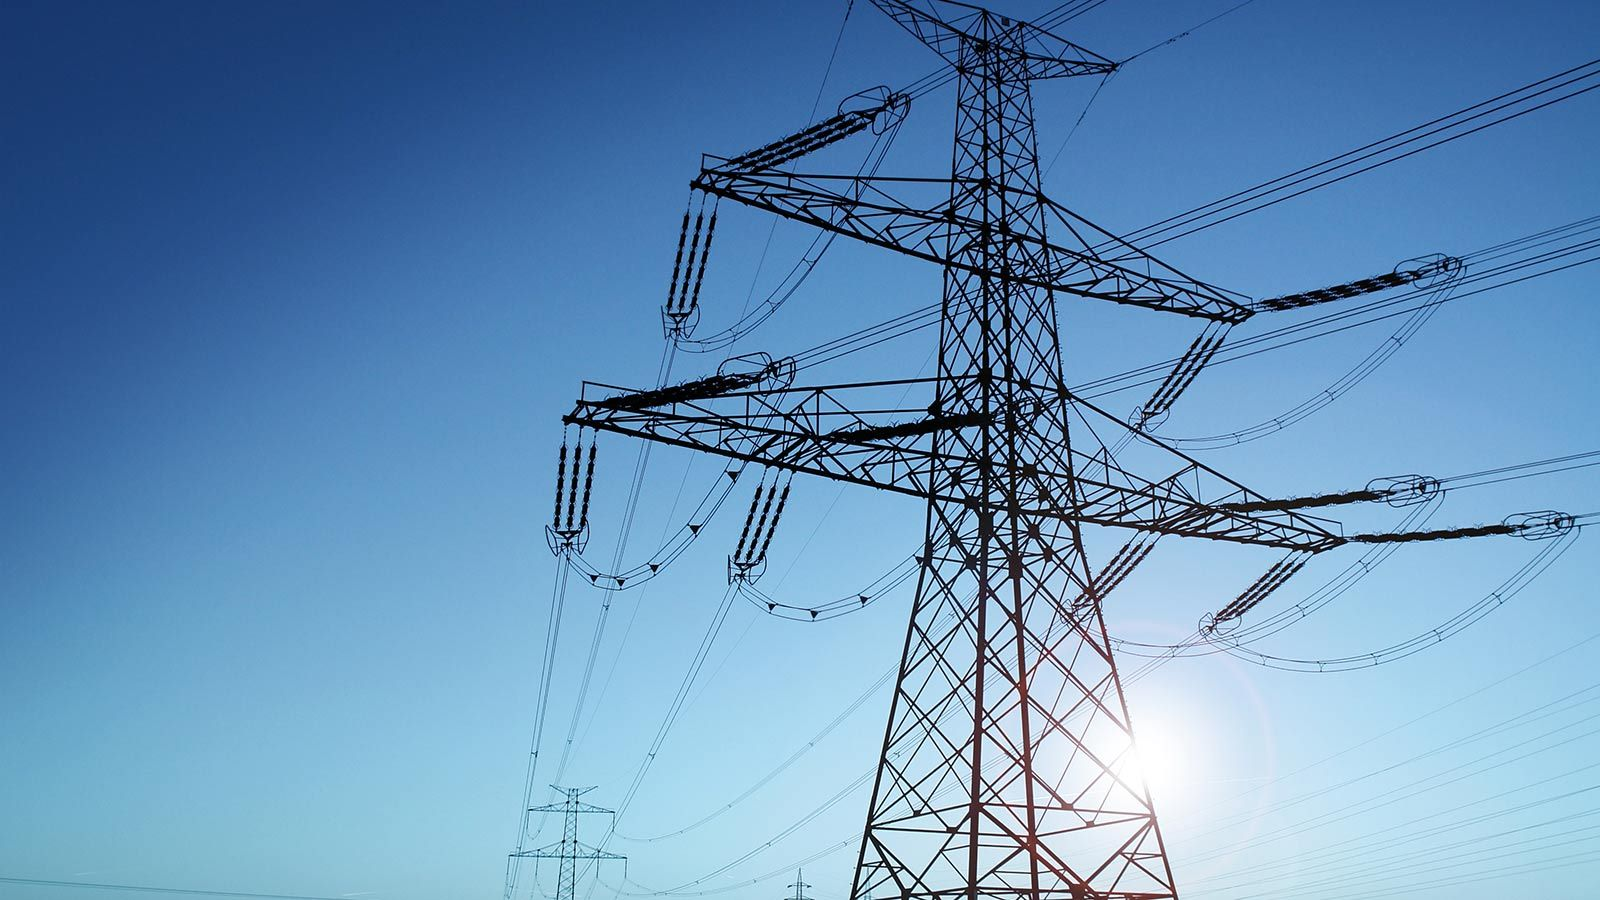 National Grid Electricity Pylons - Mace Group